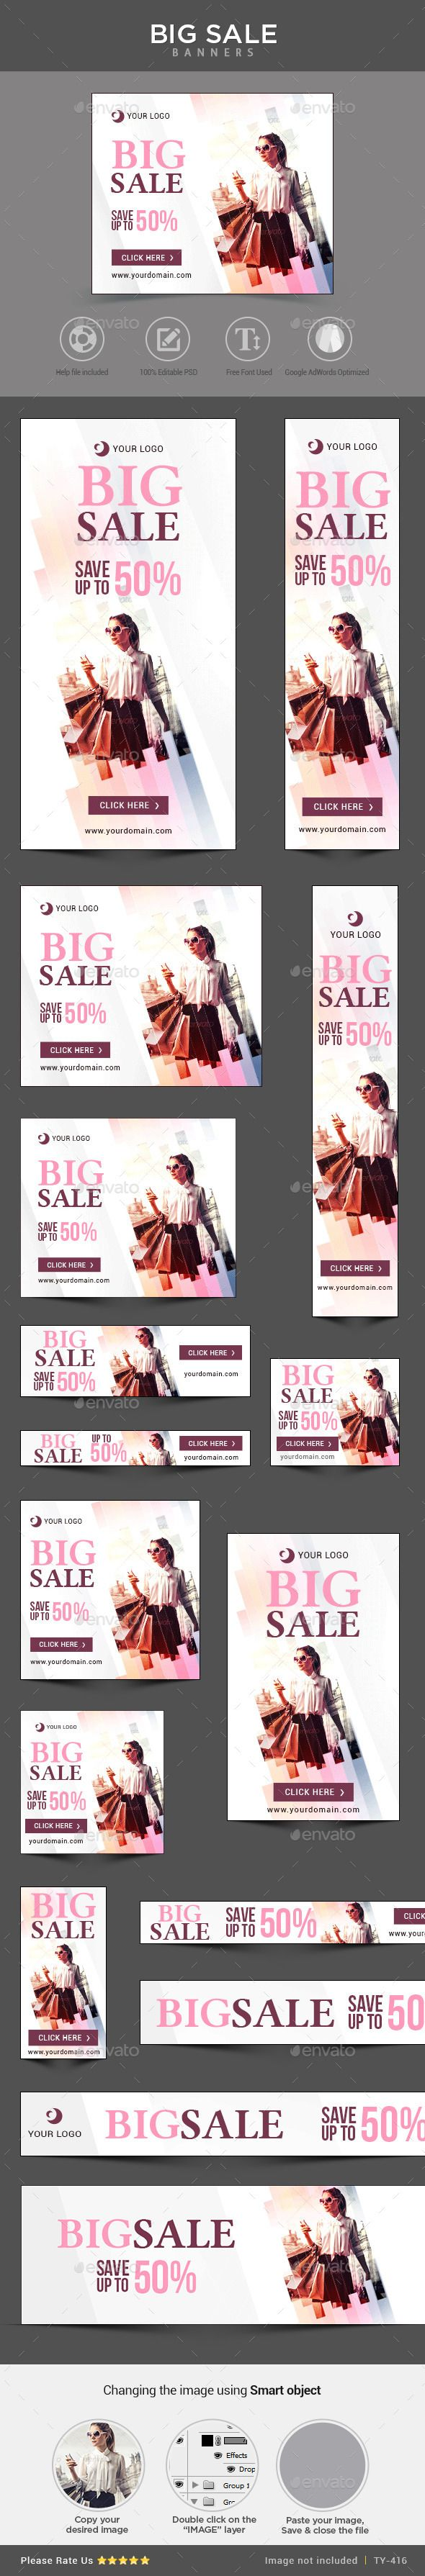 Big Sale Banners Template #web #design Download: http://graphicriver.net/item/big-sale-banners/11215665?ref=ksioks